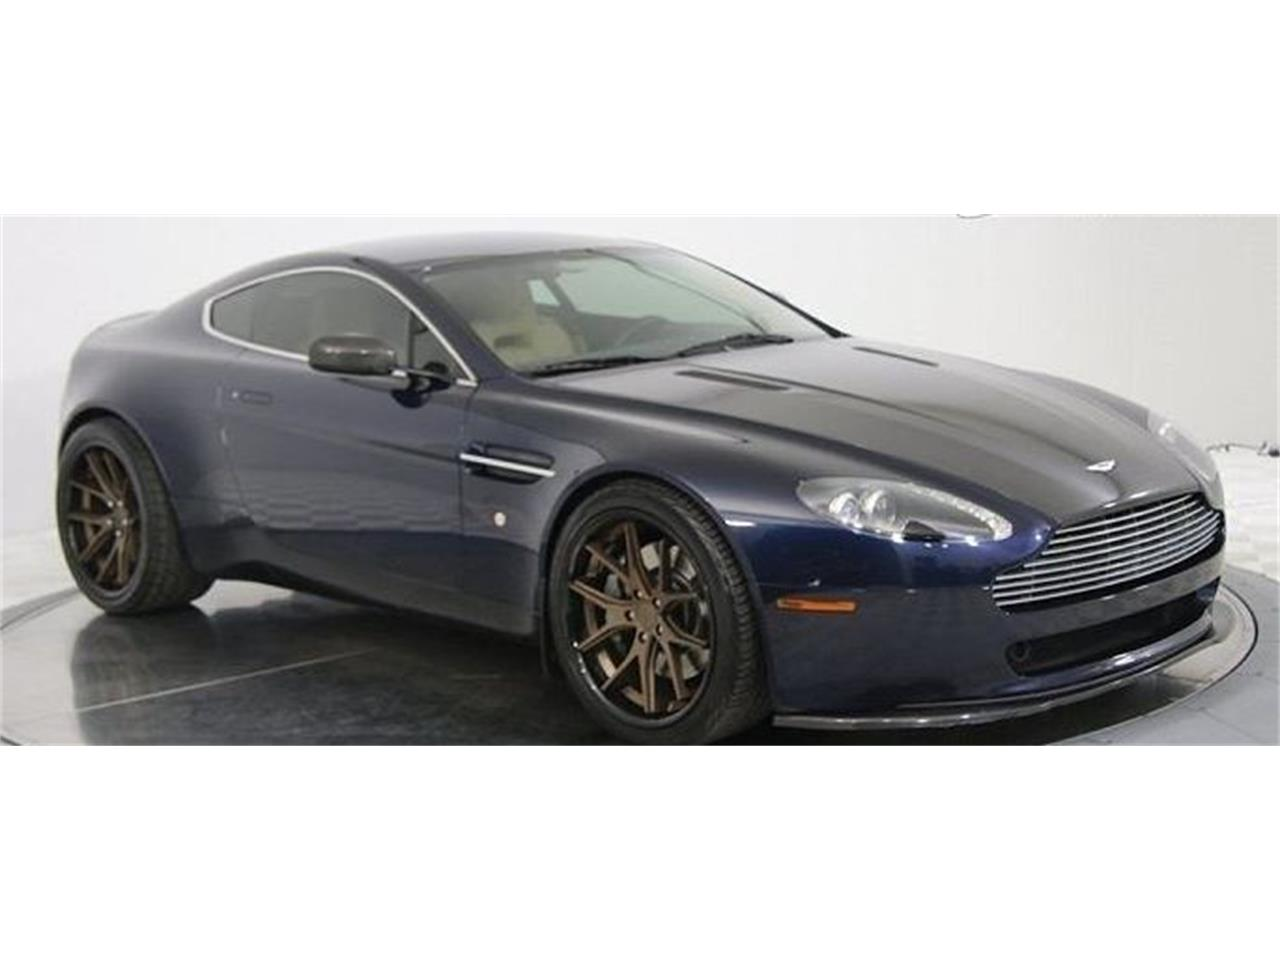 2009 Aston Martin Vantage (CC-1297454) for sale in Dallas, Texas